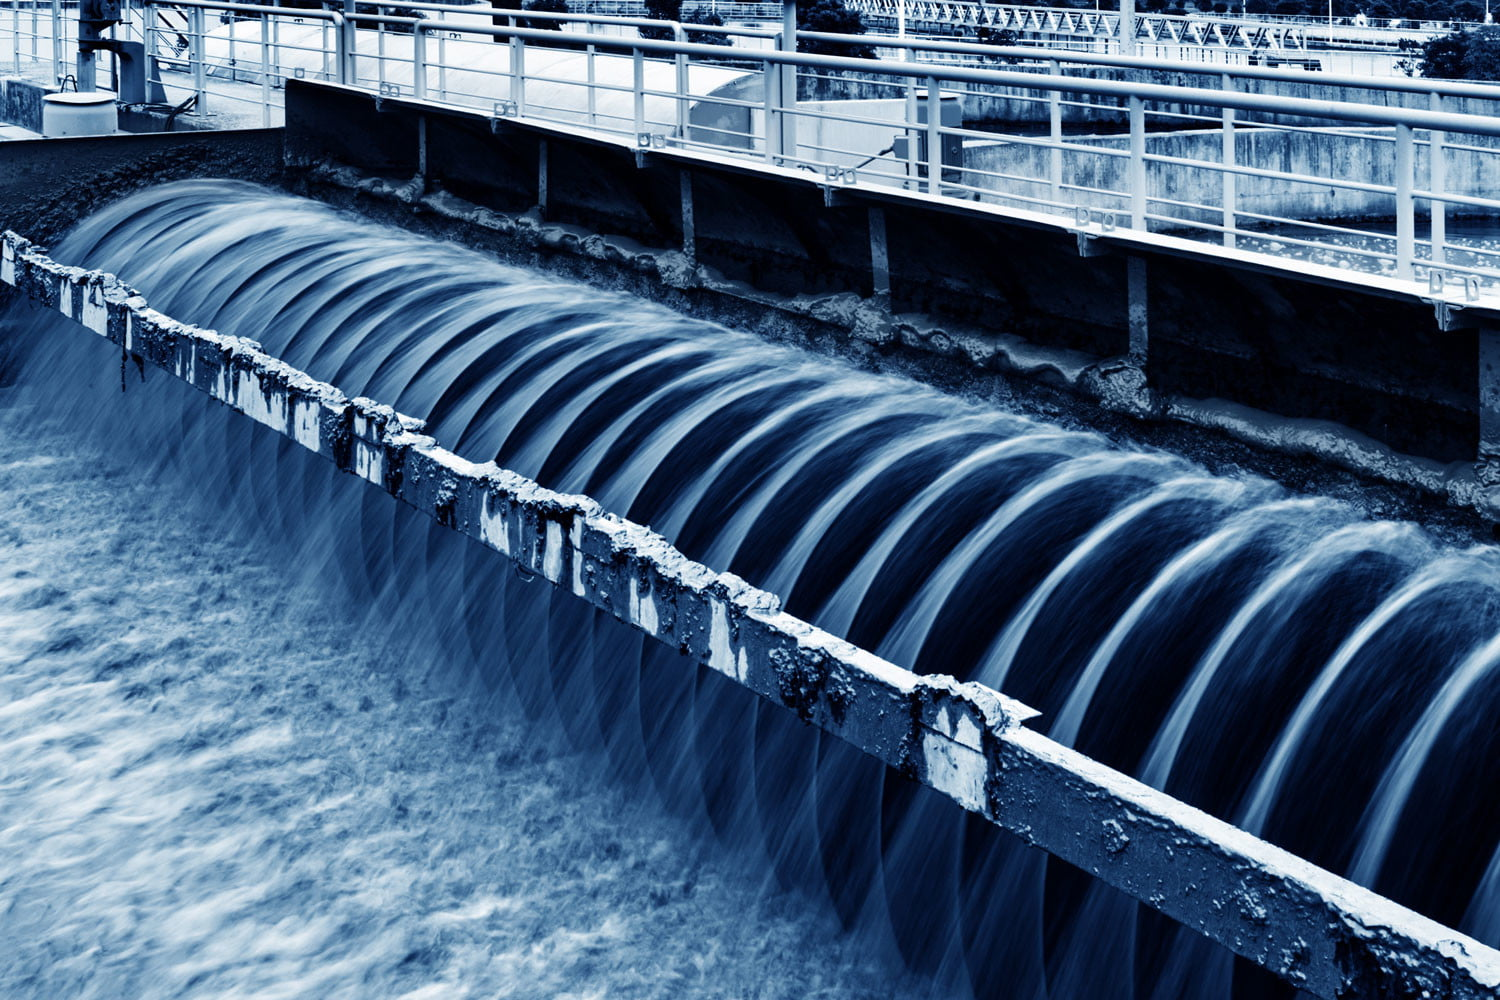 Ingenious new sewage treatment system generates electricity and clean water